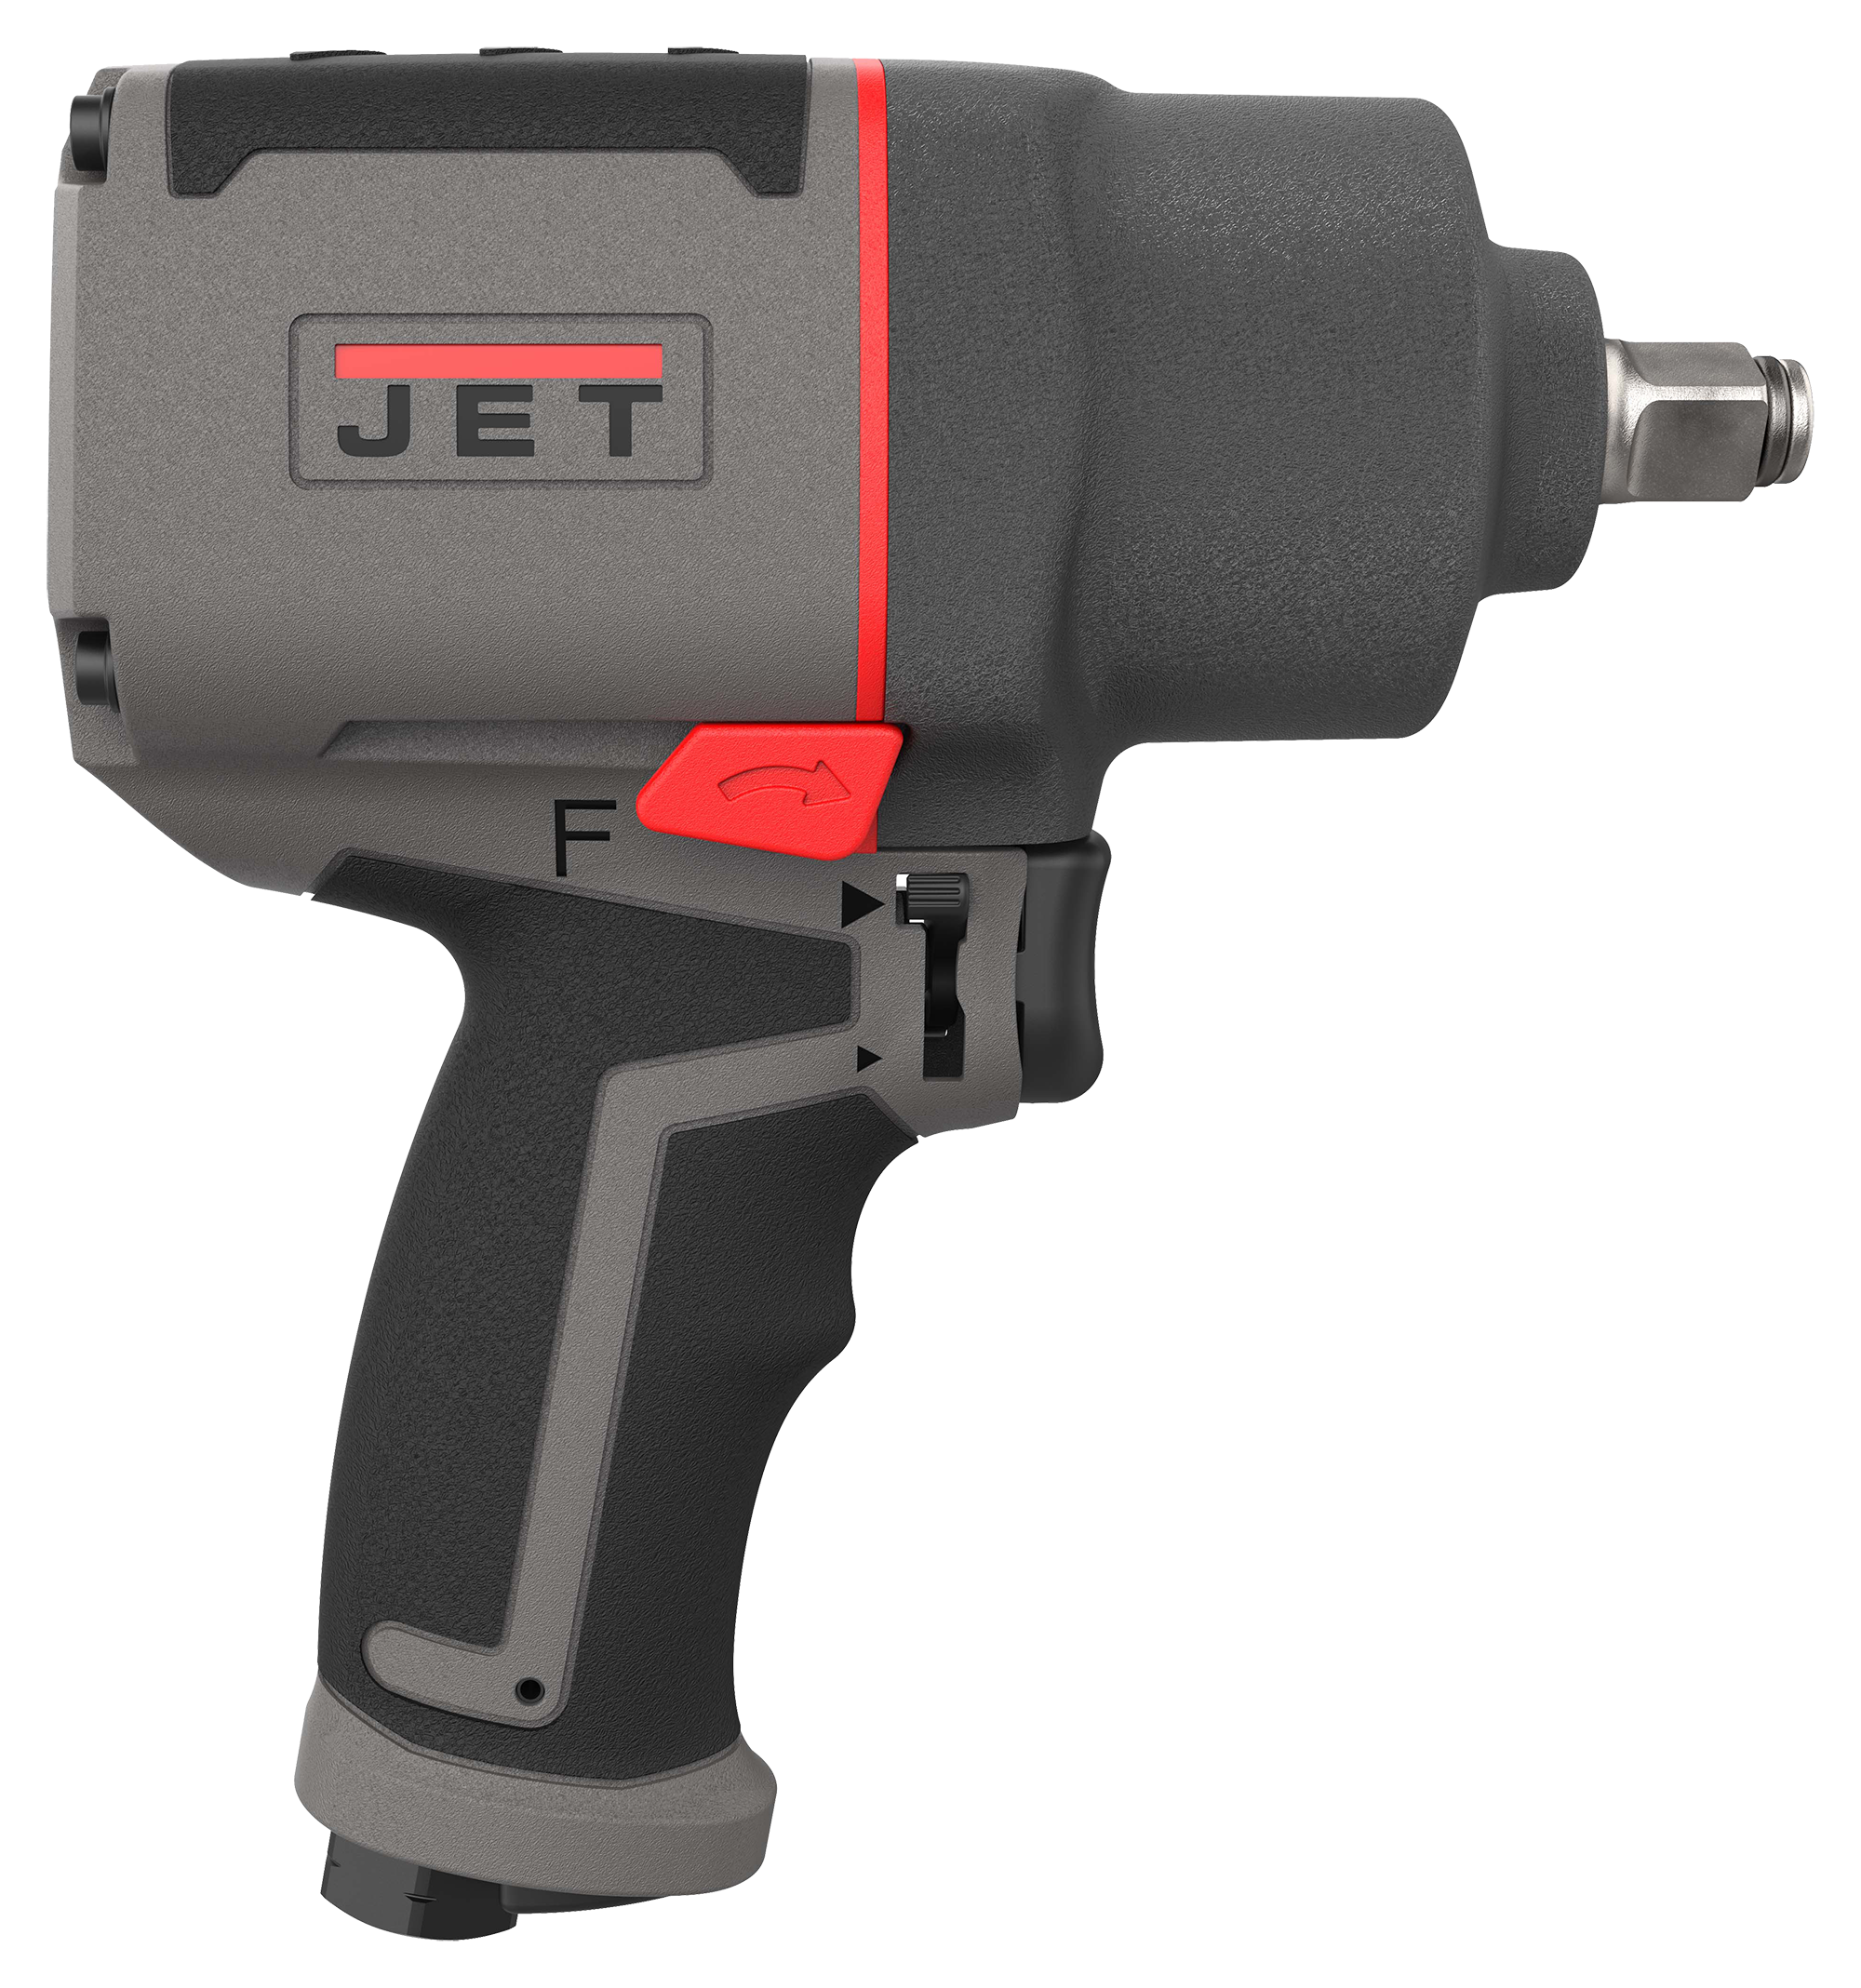 "JAT-126 1/2"" COMPOSITE IMPACT WRENCH"